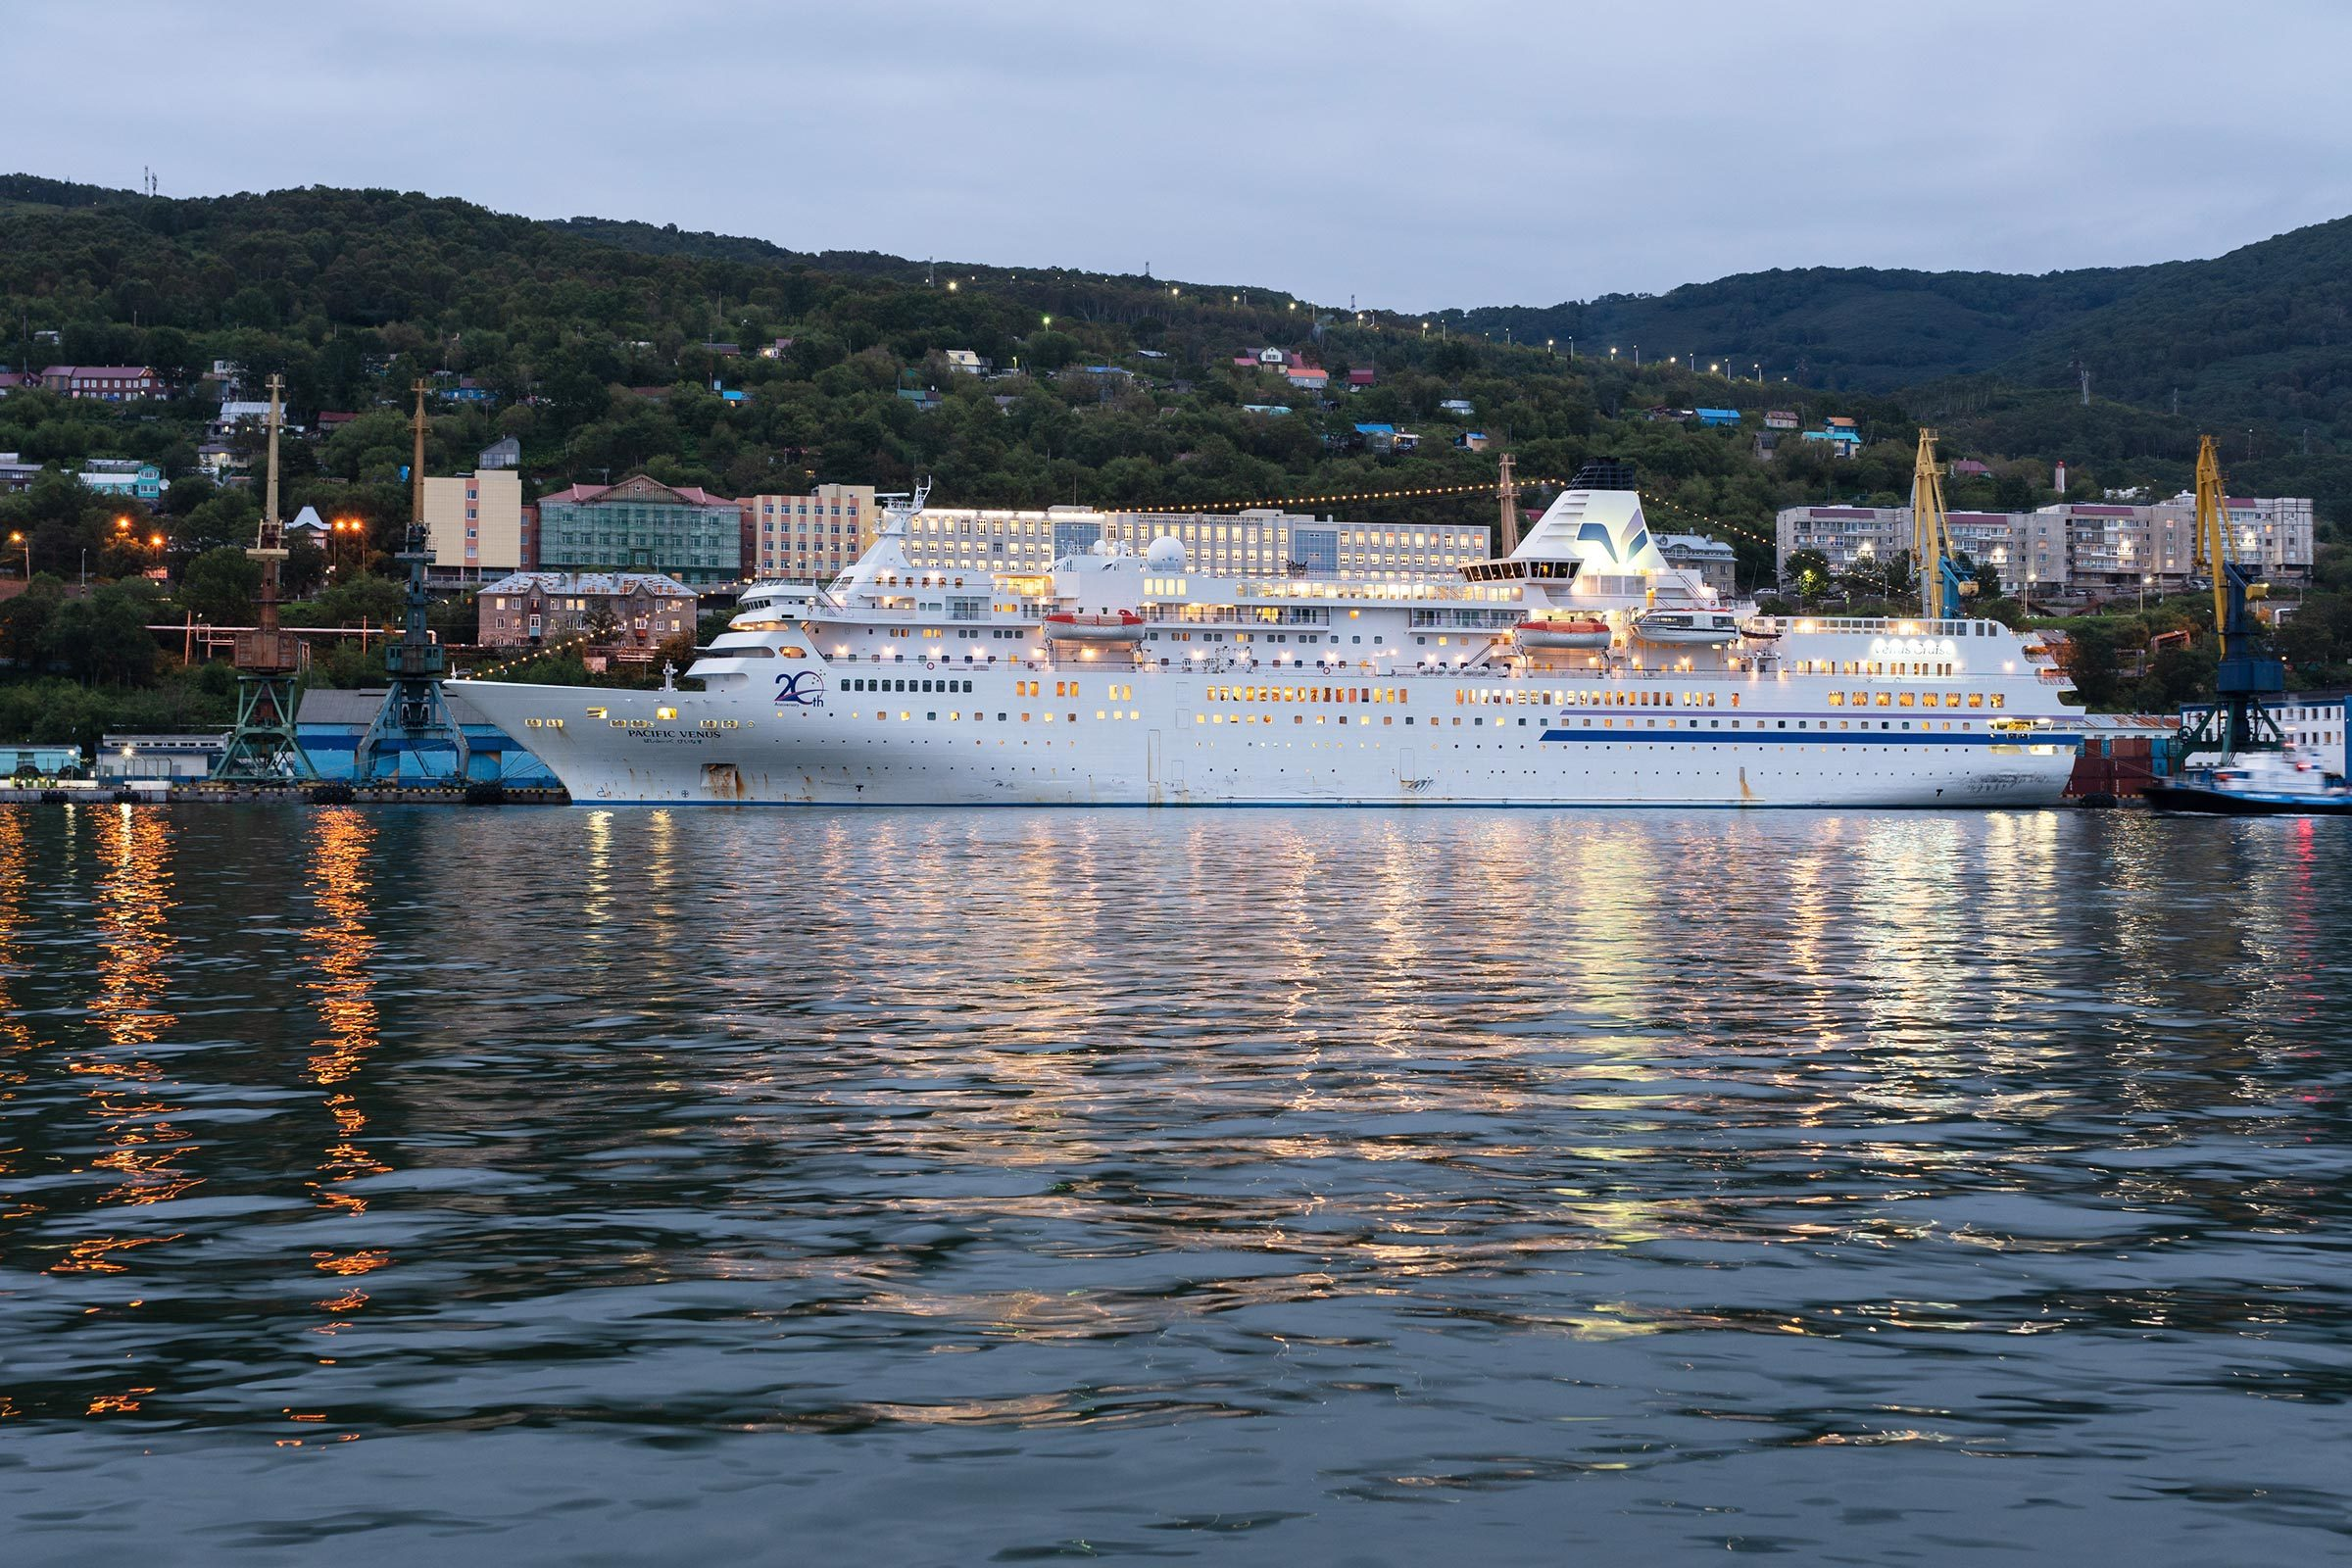 AVACHA BAY, KAMCHATKA PENINSULA, RUSSIAN FAR EAST - 4 SEPTEMBER, 2018: Picturesque night view of white Japanese cruise liner Pacific Venus anchored at pier in Petropavlovsk-Kamchatsky Seaport.